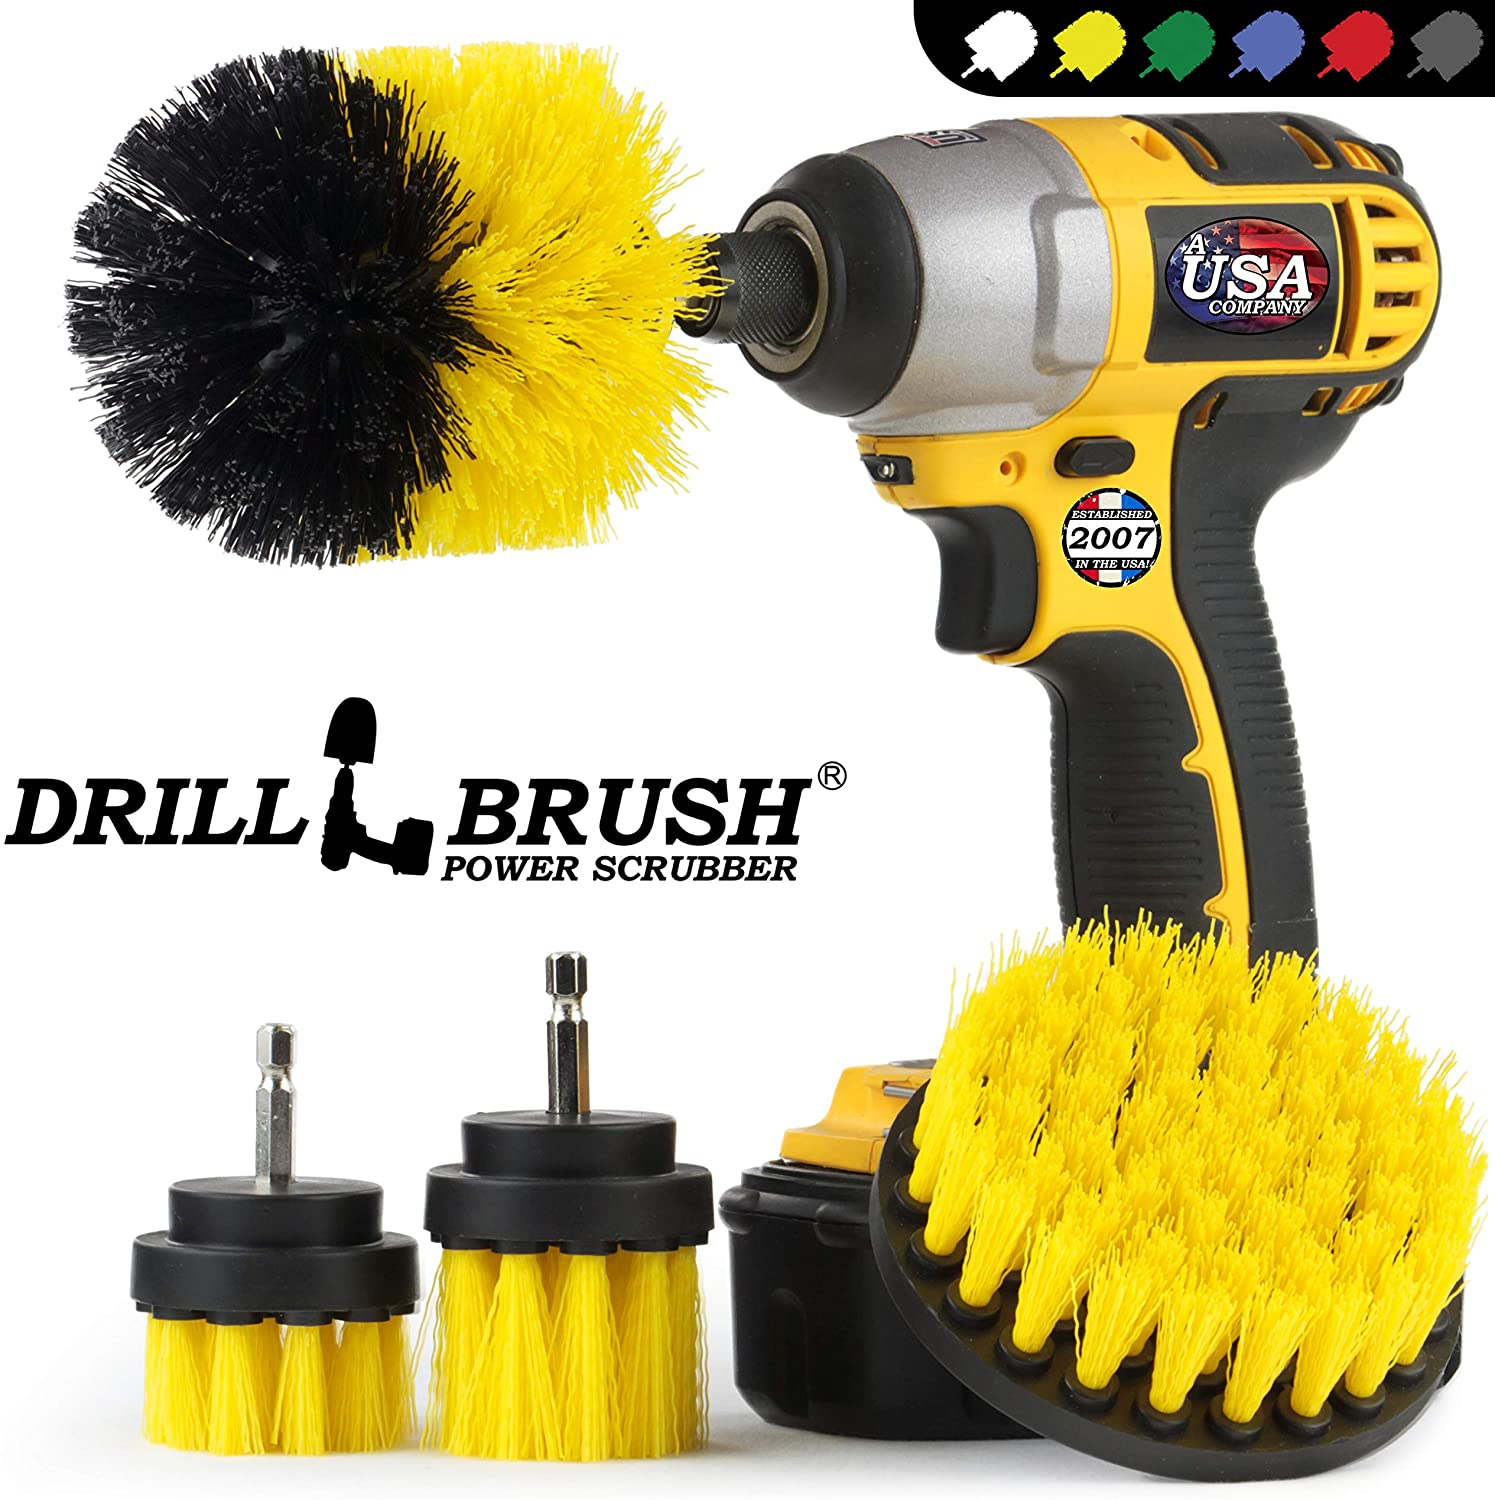 Drill Brush Spin Scrubber Kit